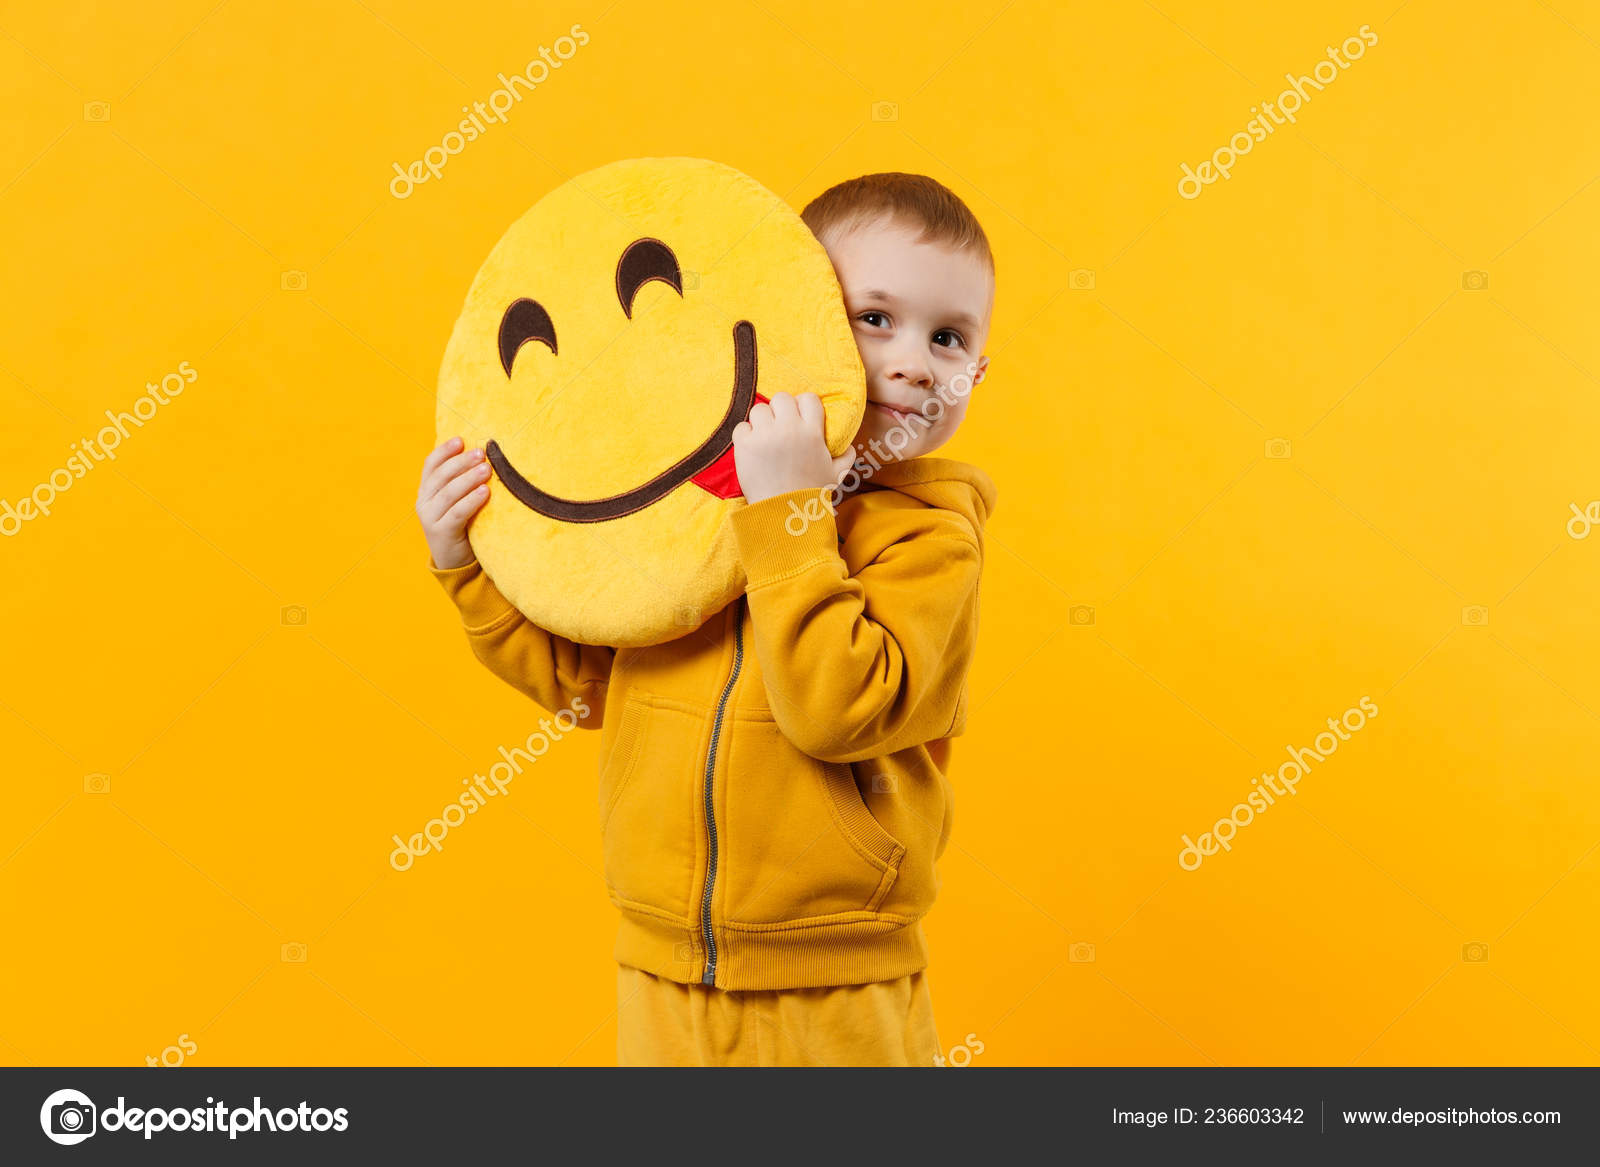 Little Cute Kid Boy Years Old Wearing Yellow Clothes